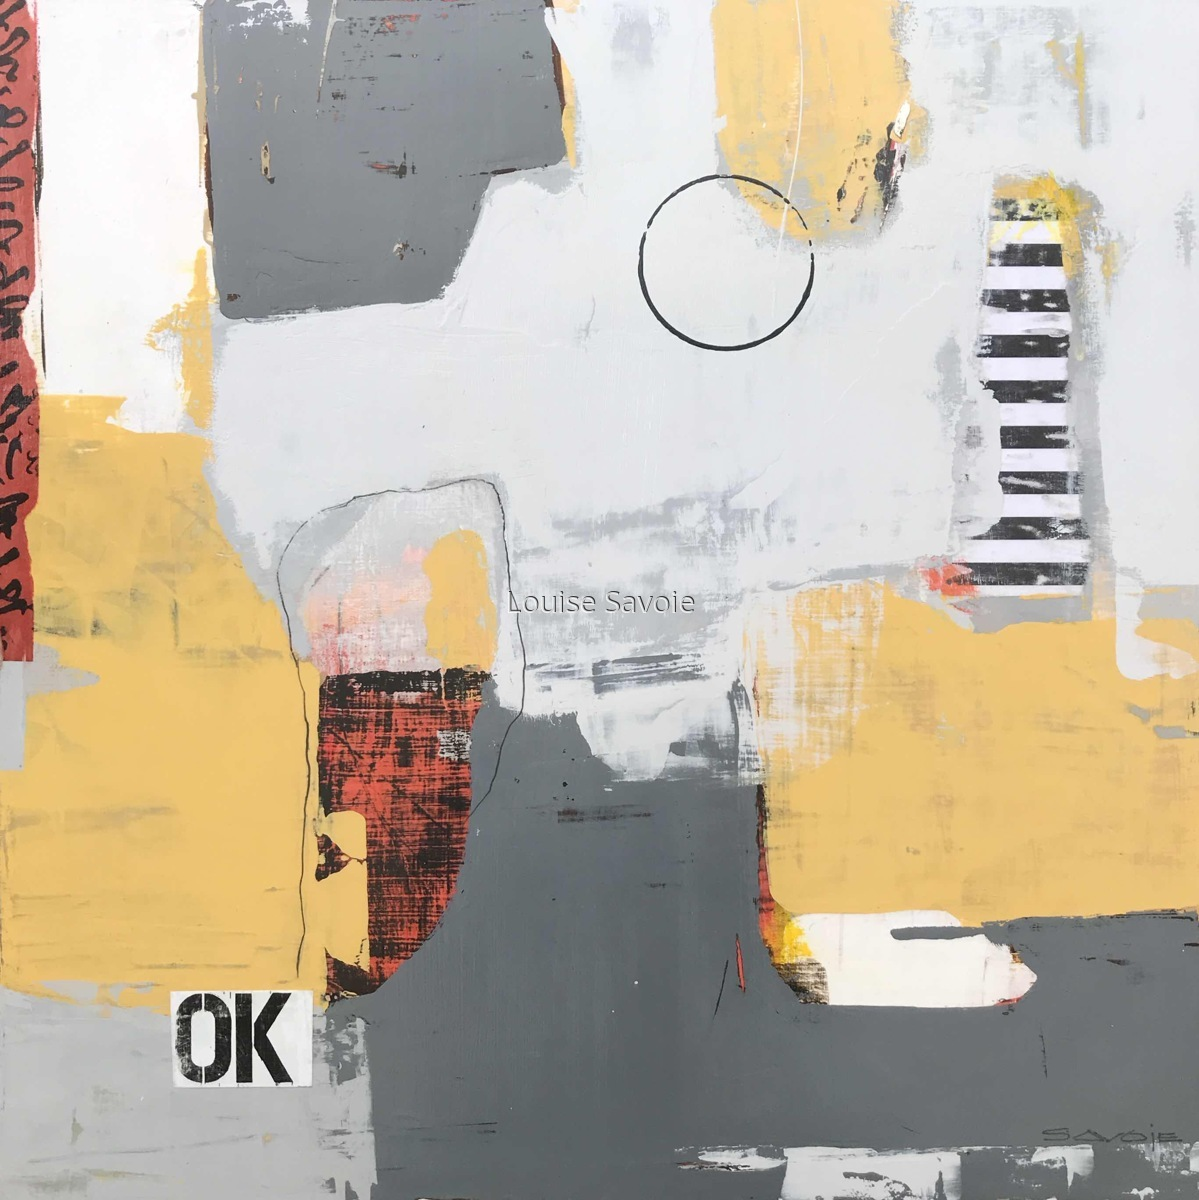 OK (large view)